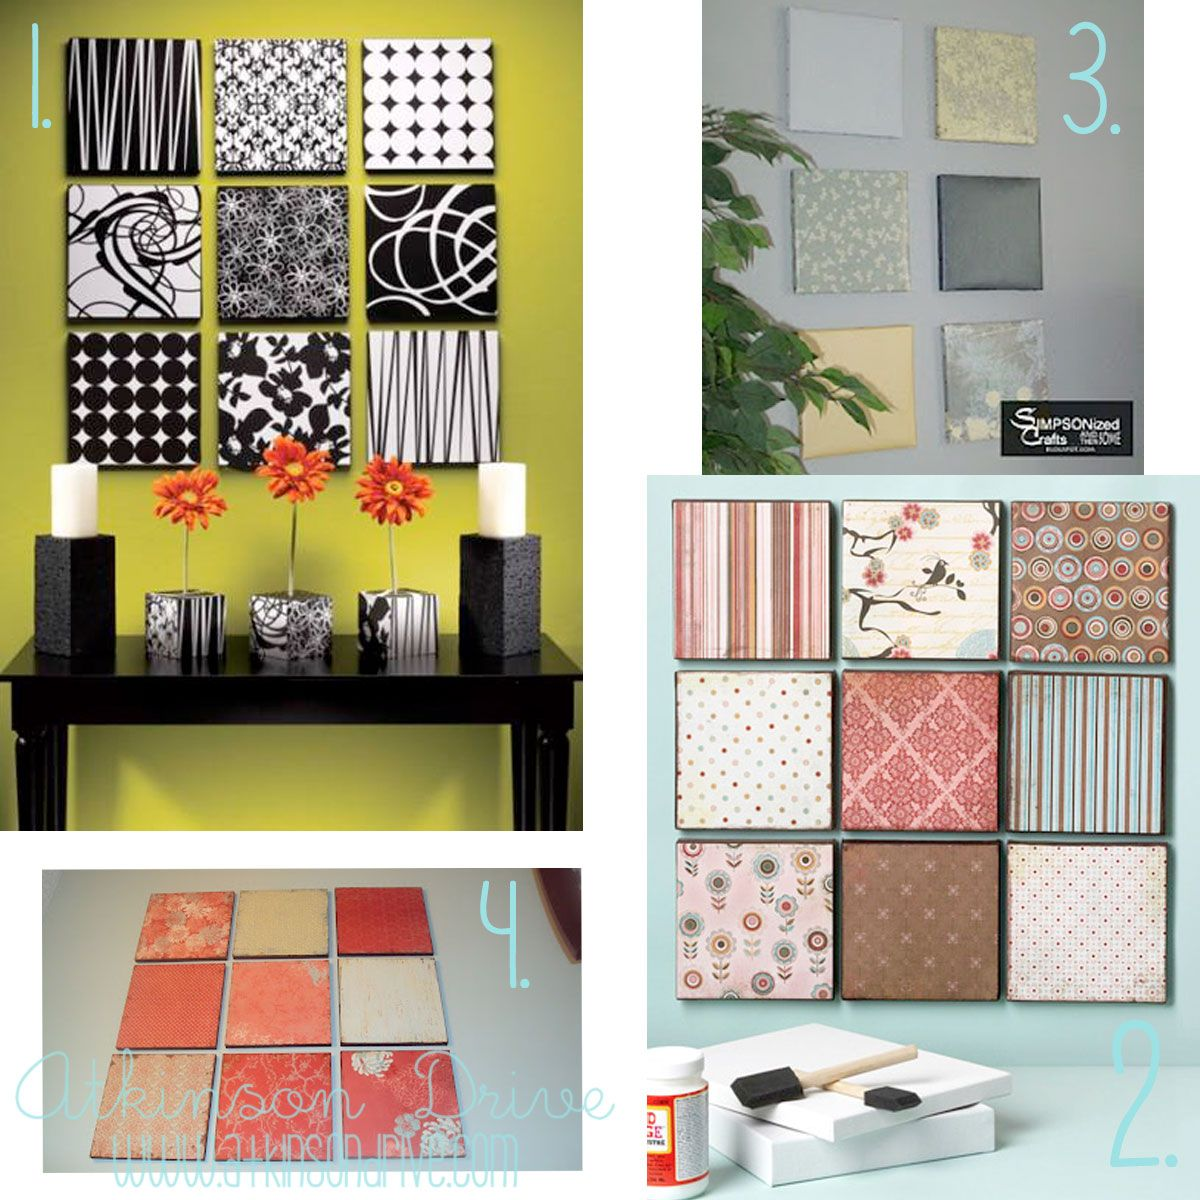 Living Room Wall Decorations Pinterest 1000 images about crafts scrapbook home decor ideas on pinterest paper diy and wall decor